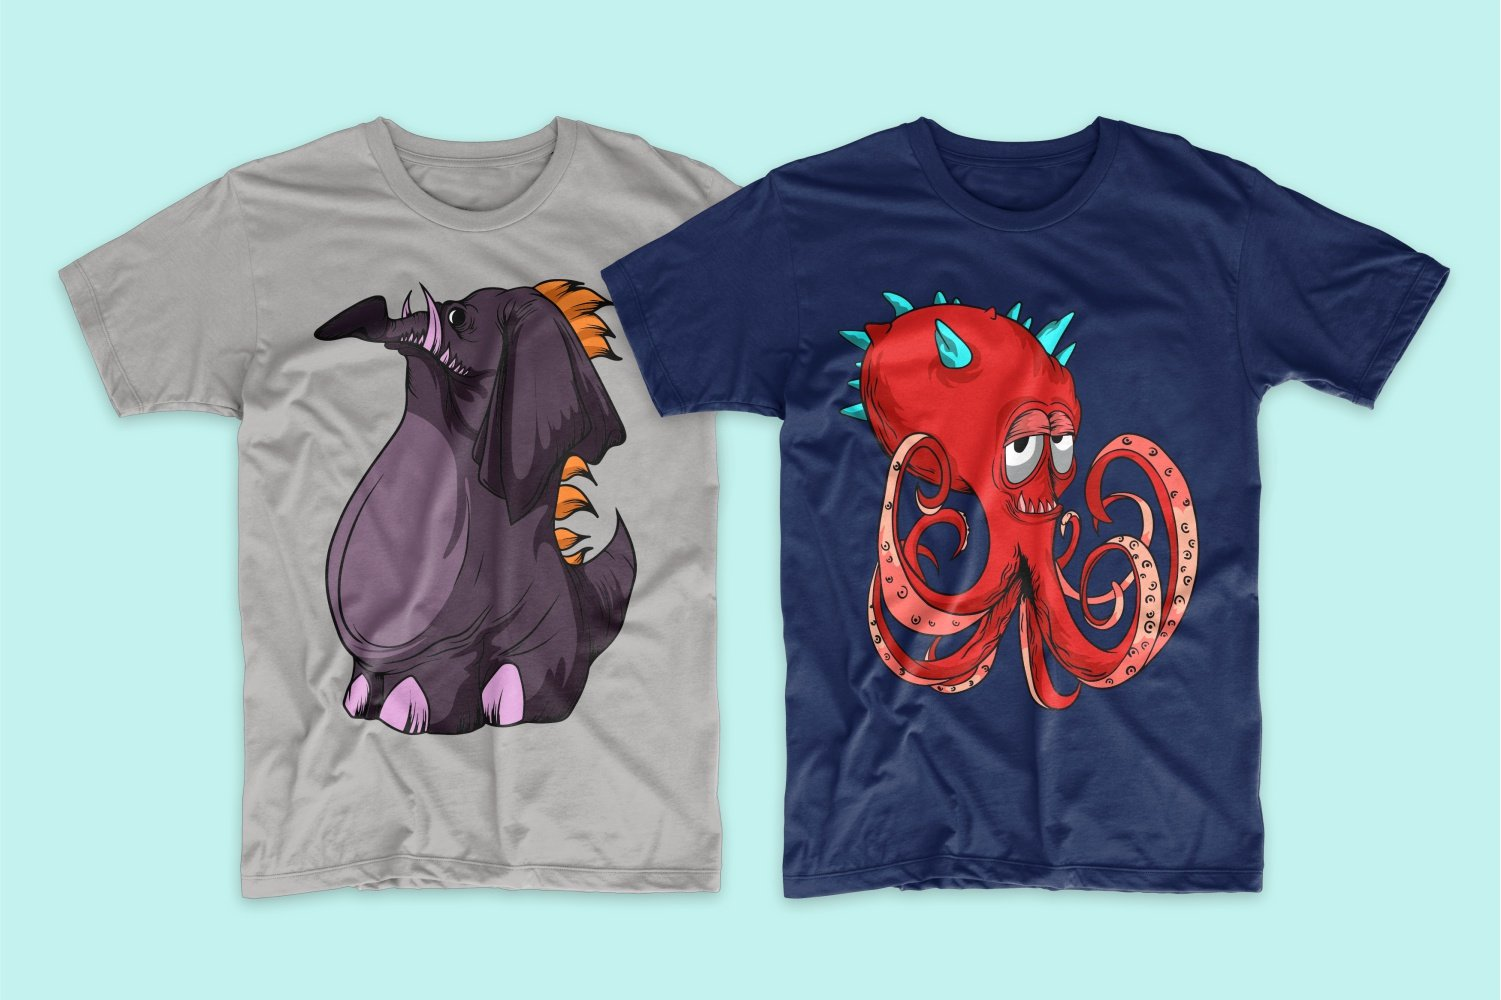 White T-shirt with a dark purple elephant with an orange tufted and blue with a red octopus with blue horns.